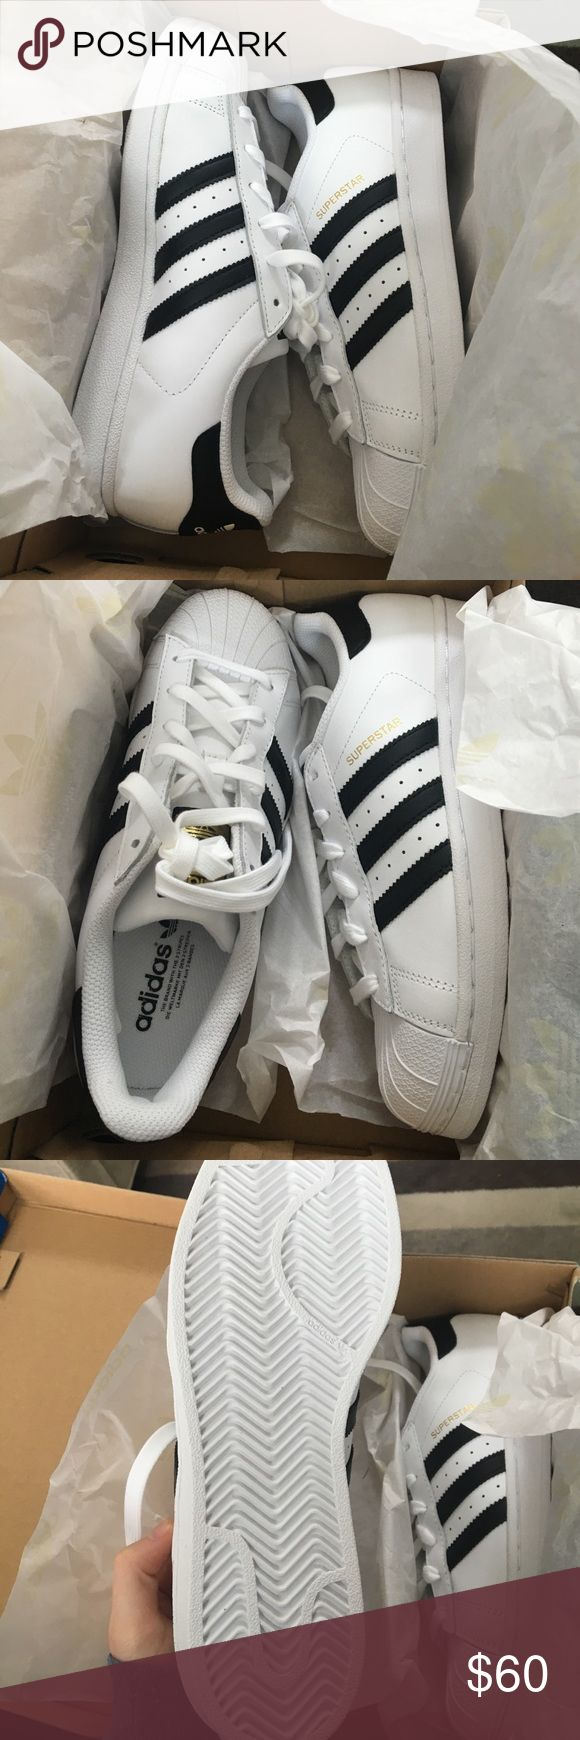 Adidas Originals Superstar Ice White Black Cheap Superstar